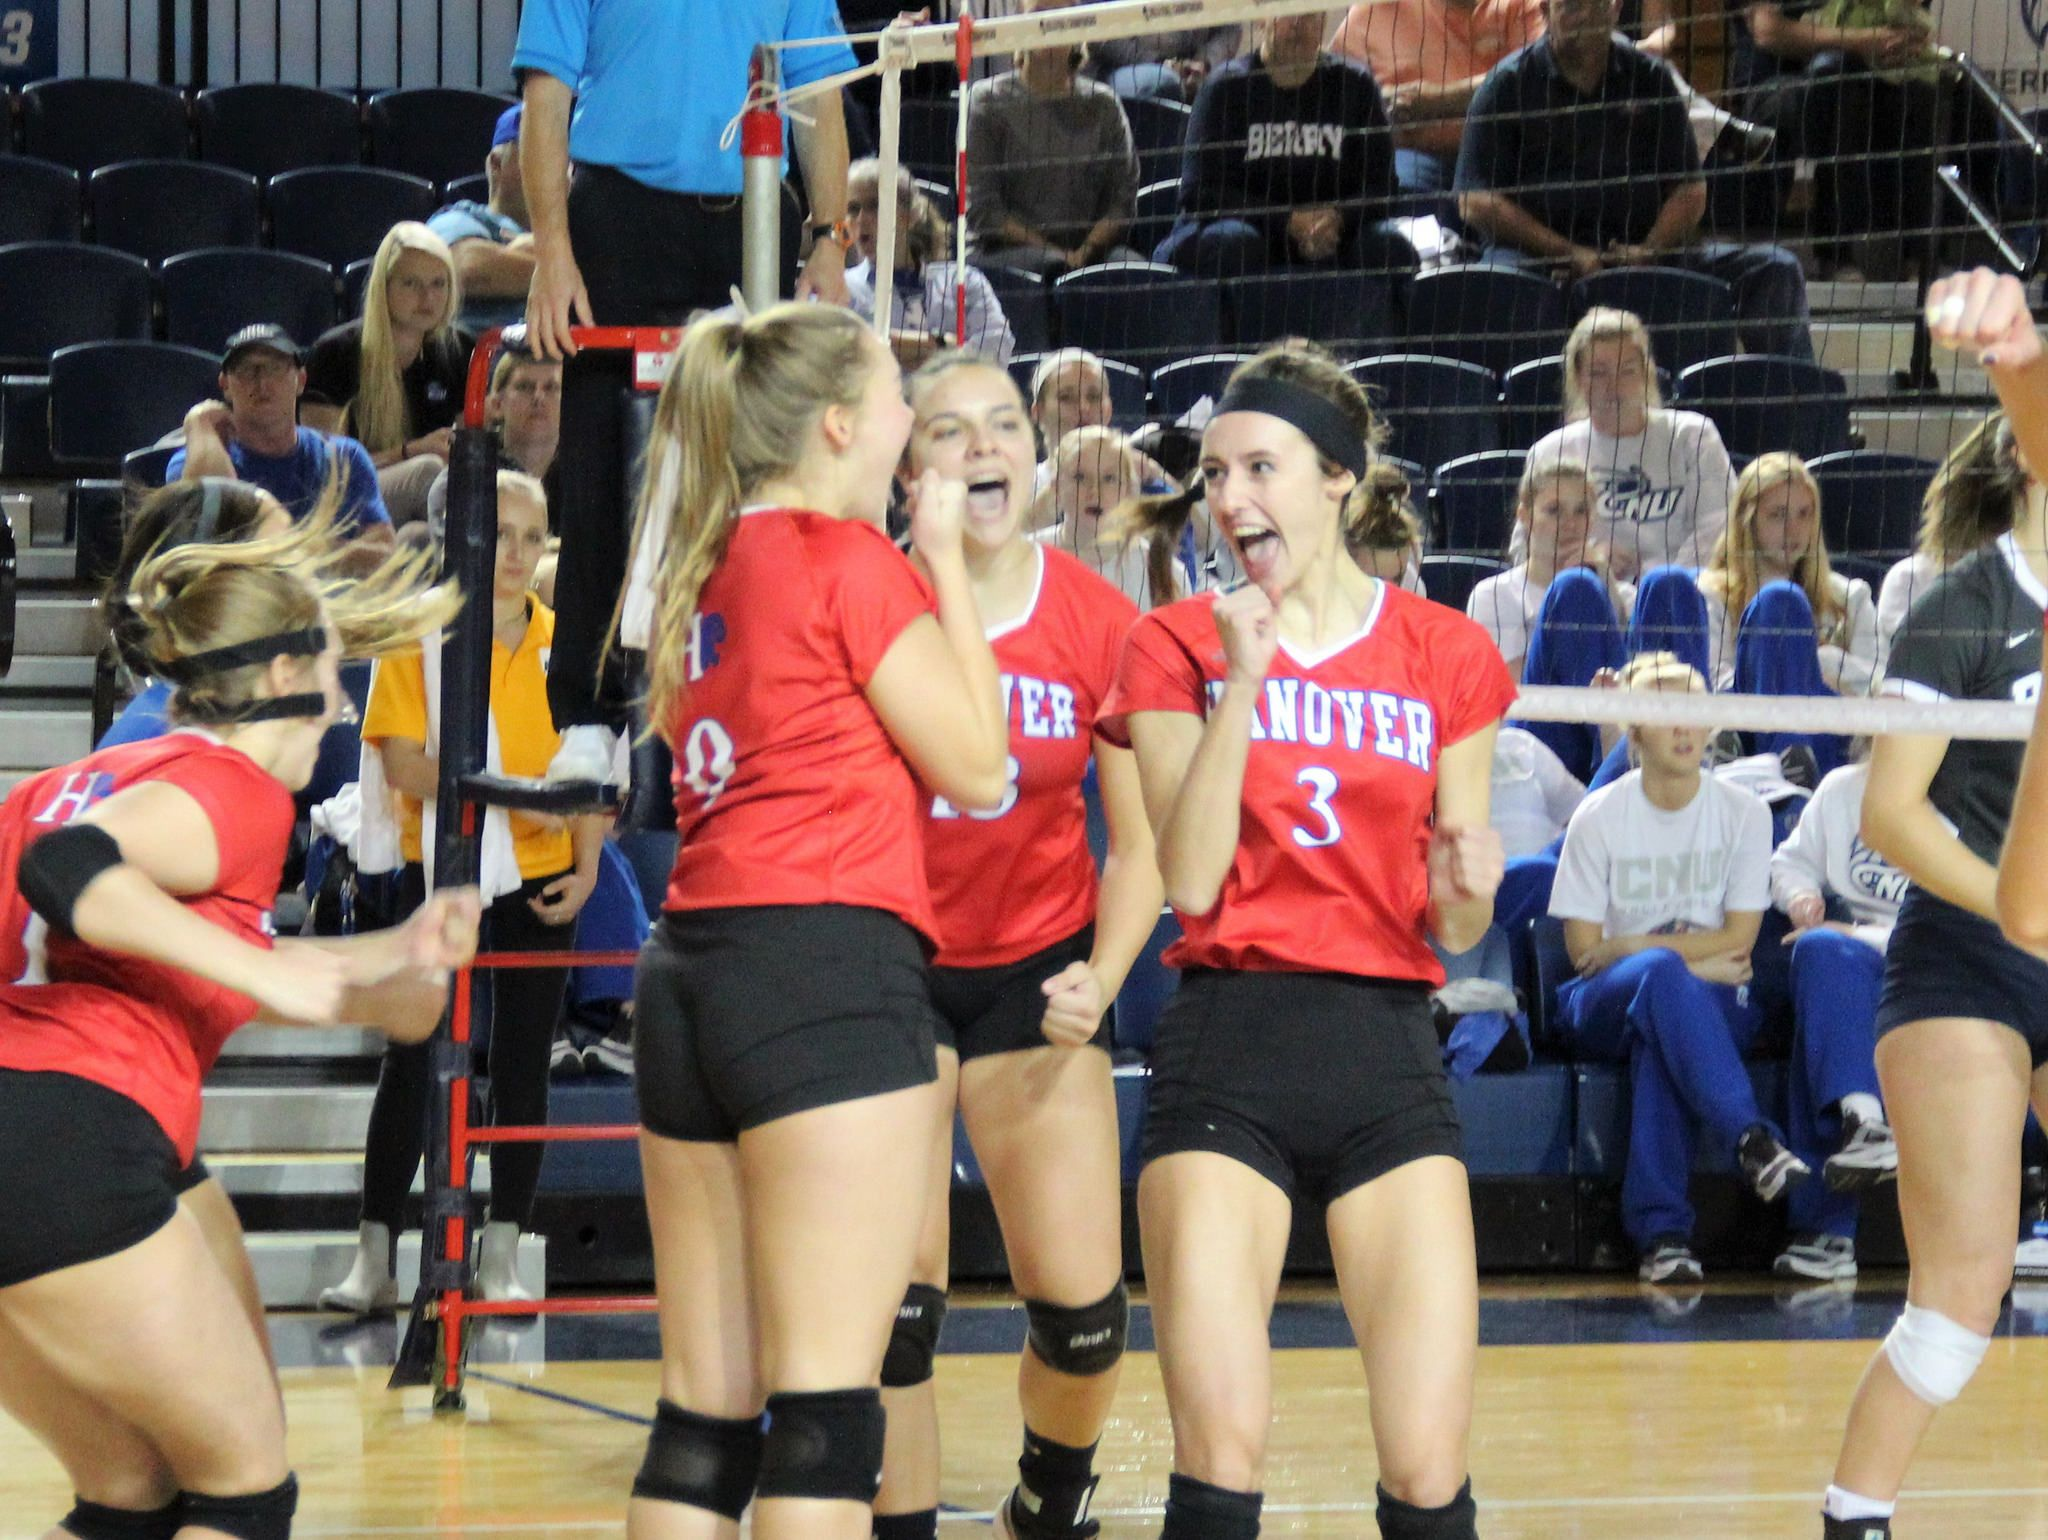 Ncaa Division Iii Volleyball Tournament Volleyball Tournaments Volleyball Ncaa